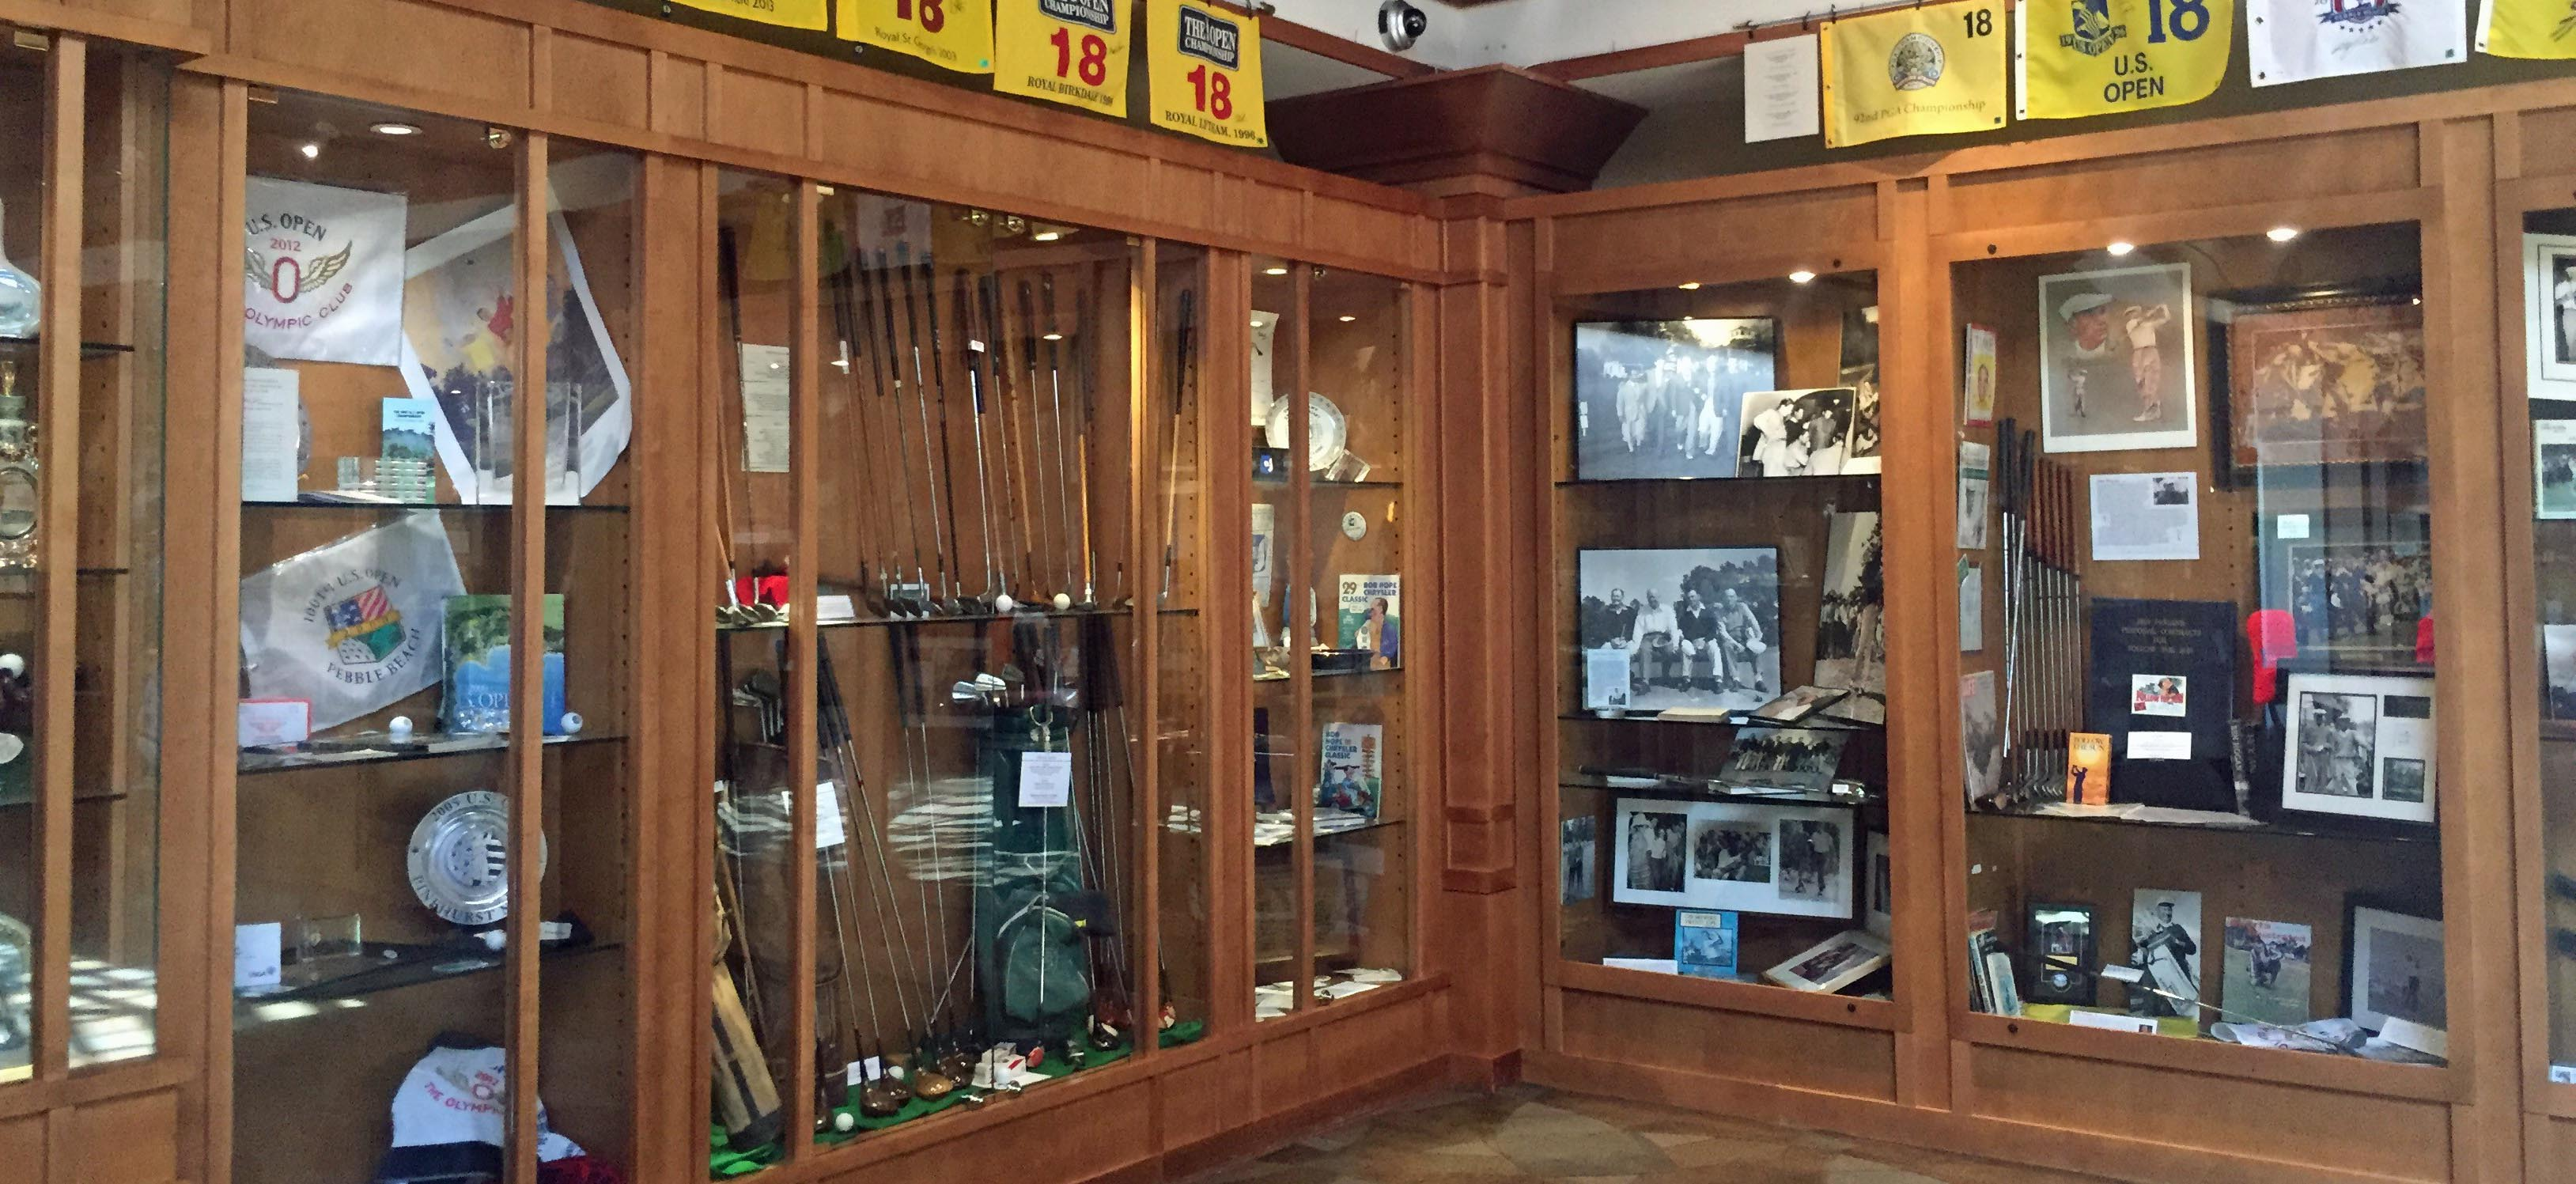 Bradenburg Historical Golf Museum at Cinnabar Hills